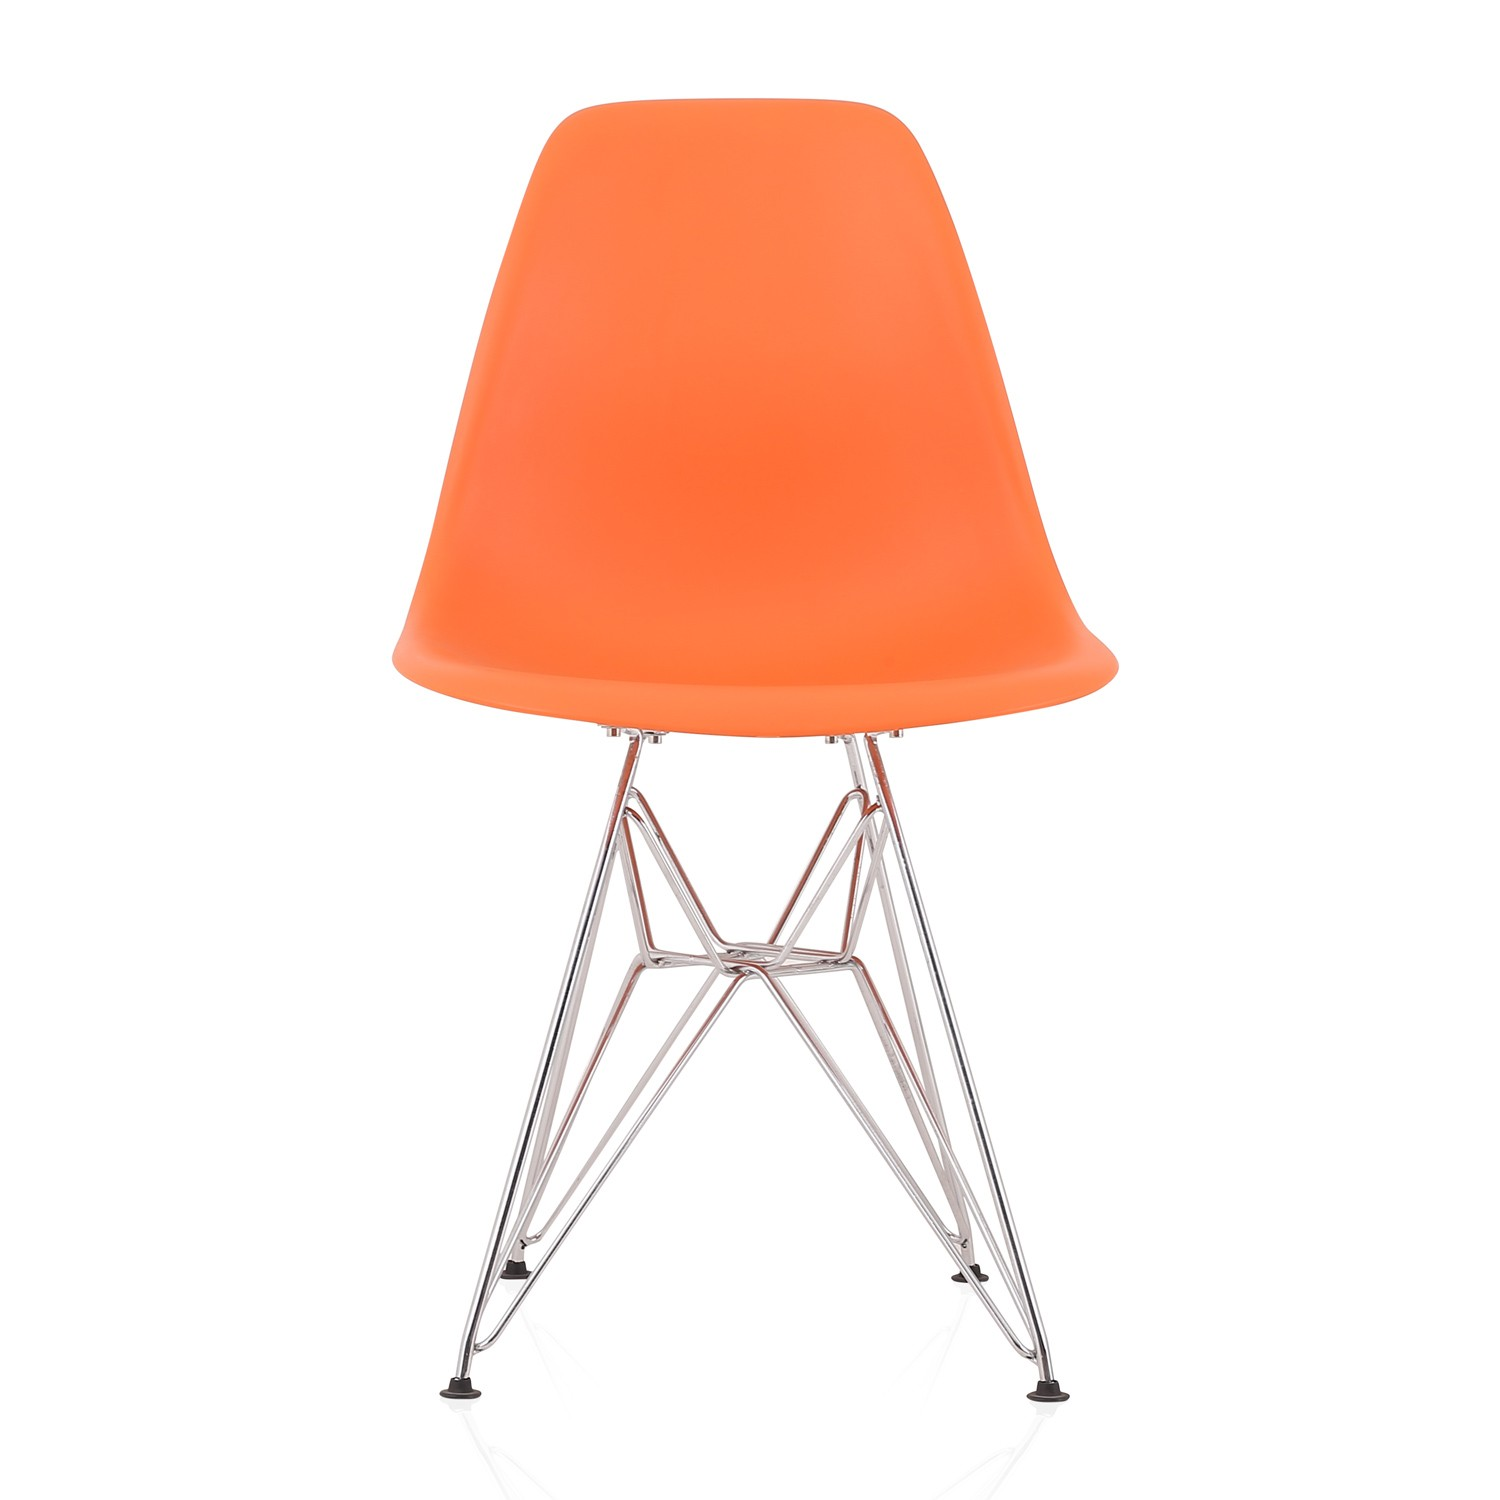 Eames Style DSR Molded Orange Plastic Dining Shell Chair  : dsr dining chair orangep2 from www.emoderndecor.com size 1500 x 1500 jpeg 103kB